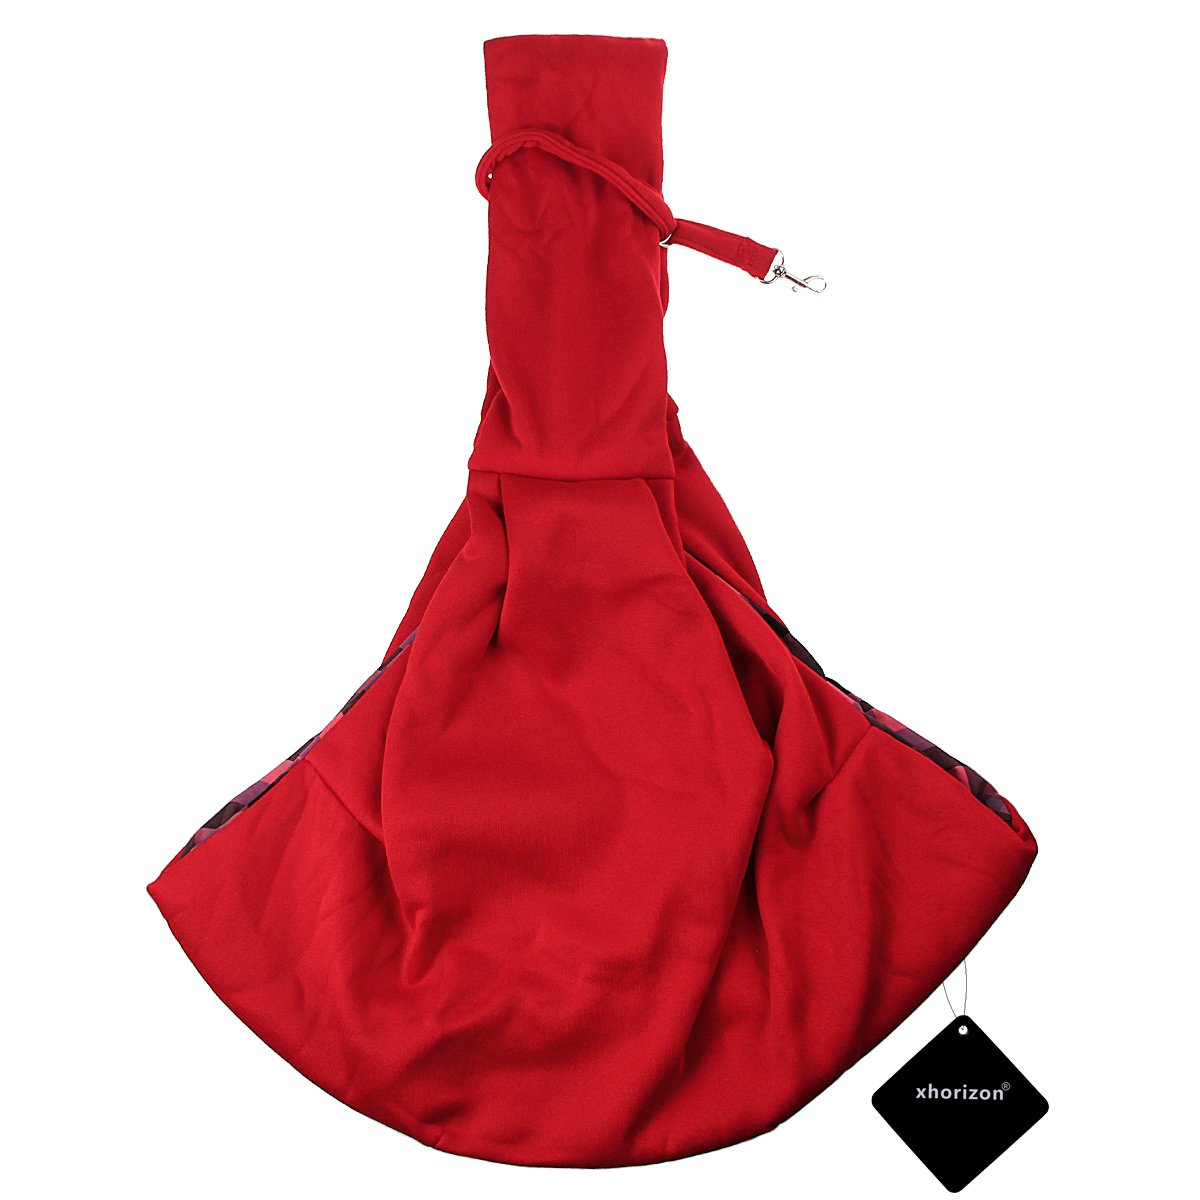 Pet Sling Carrier, xhorizon TM FL1 Soft and Comfortable Cotton Material, Hands-free Reversible Pet Sling Shoulder Bag Adjustable for Small Medium Dogs Cats, Perfect for Outdoor and Travel (Red)